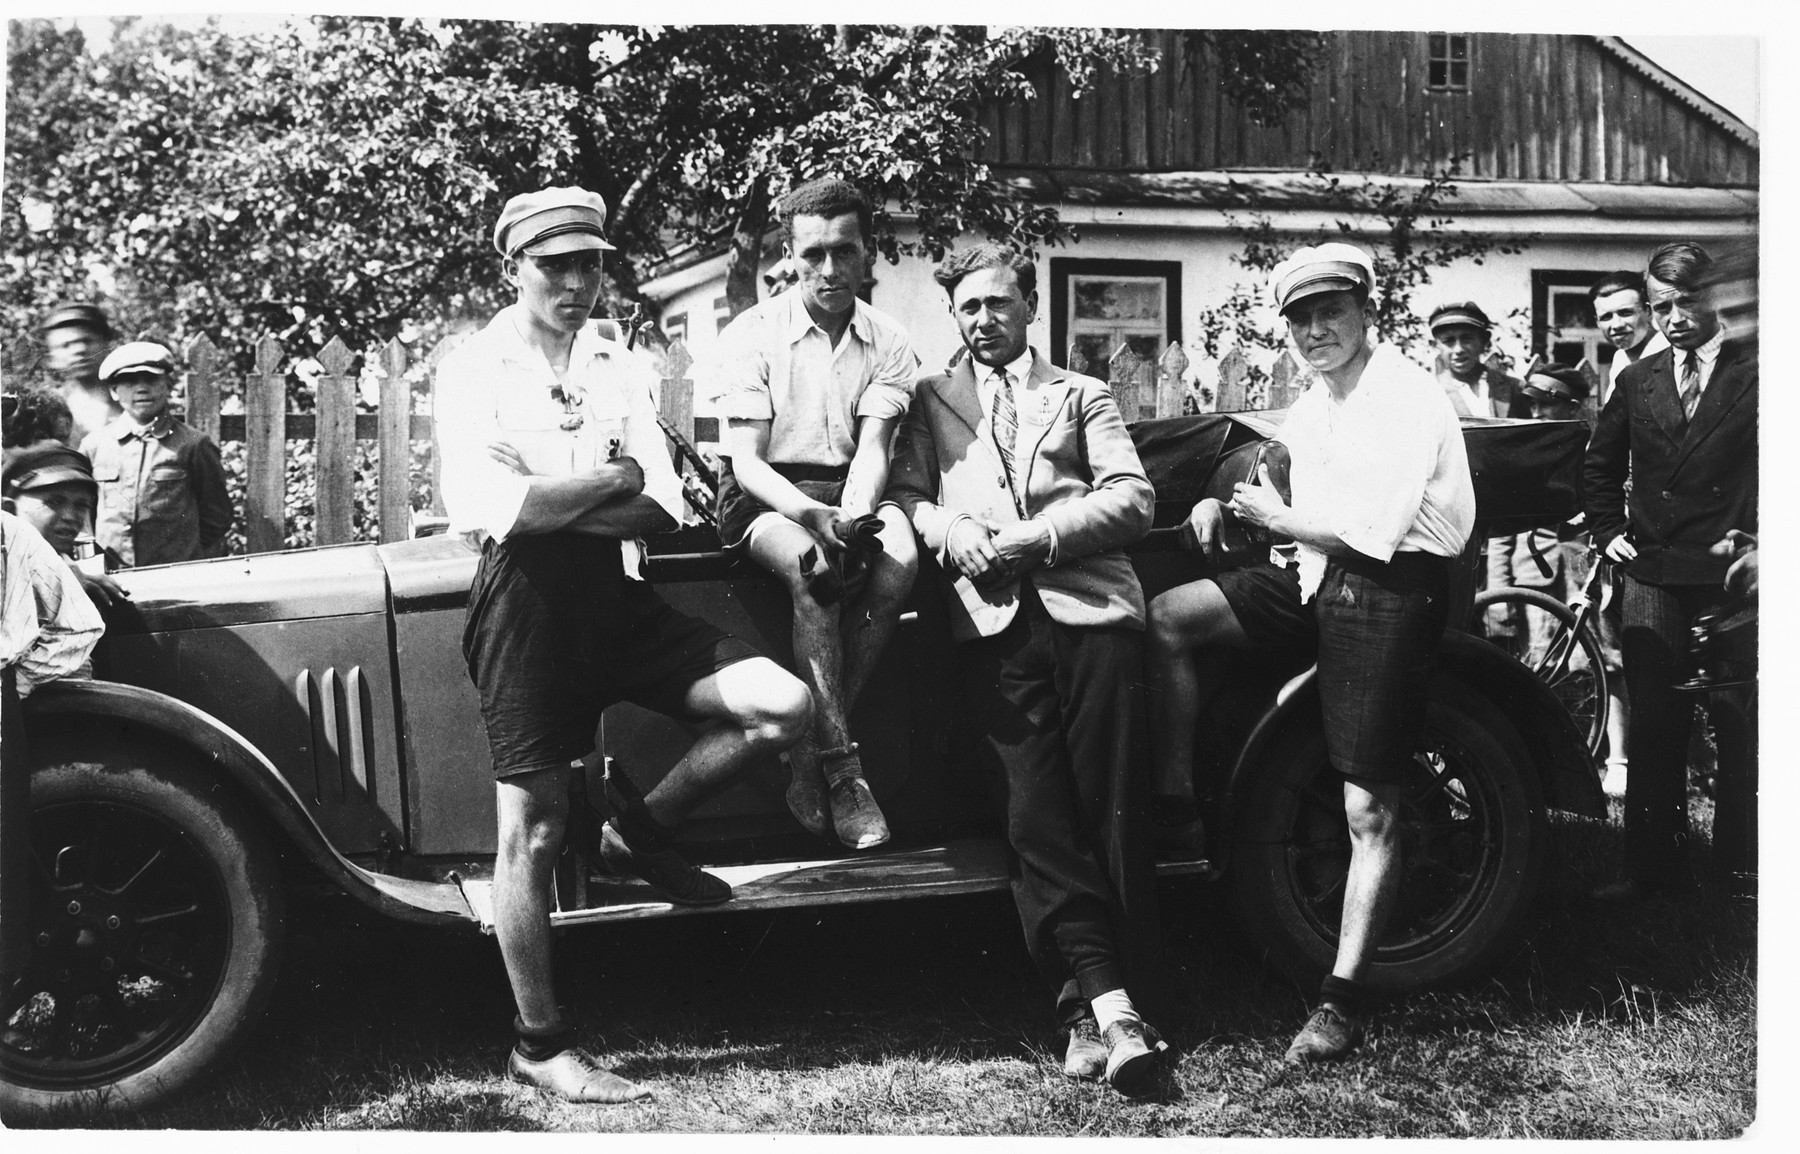 Shmuel Gertner and his friends gather around a shiny automobile.